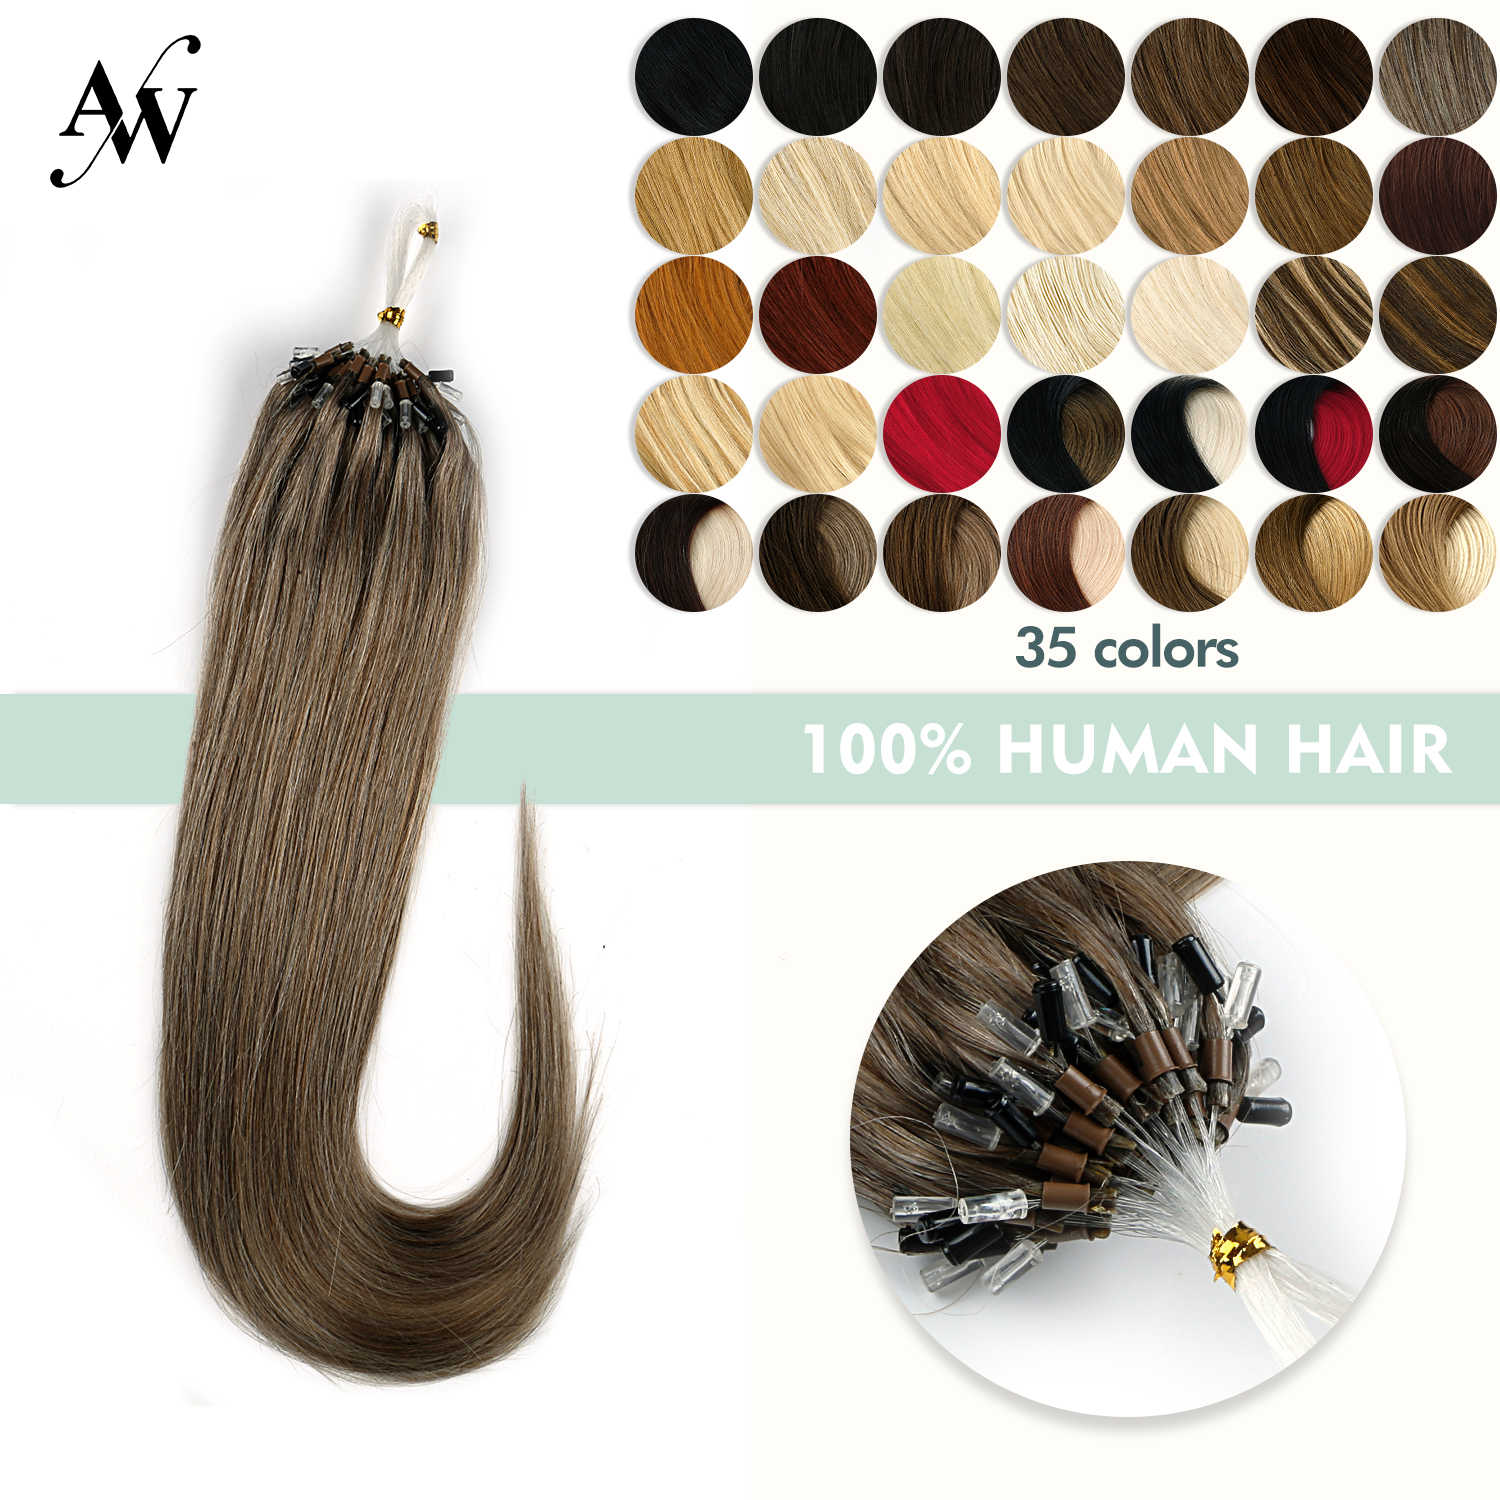 Aw 16 ''20'' 24 ''Micro Loop Human Hair Extensions Straight Machine Gemaakt Remy Micro Bead Hair Extensions 1 G/s